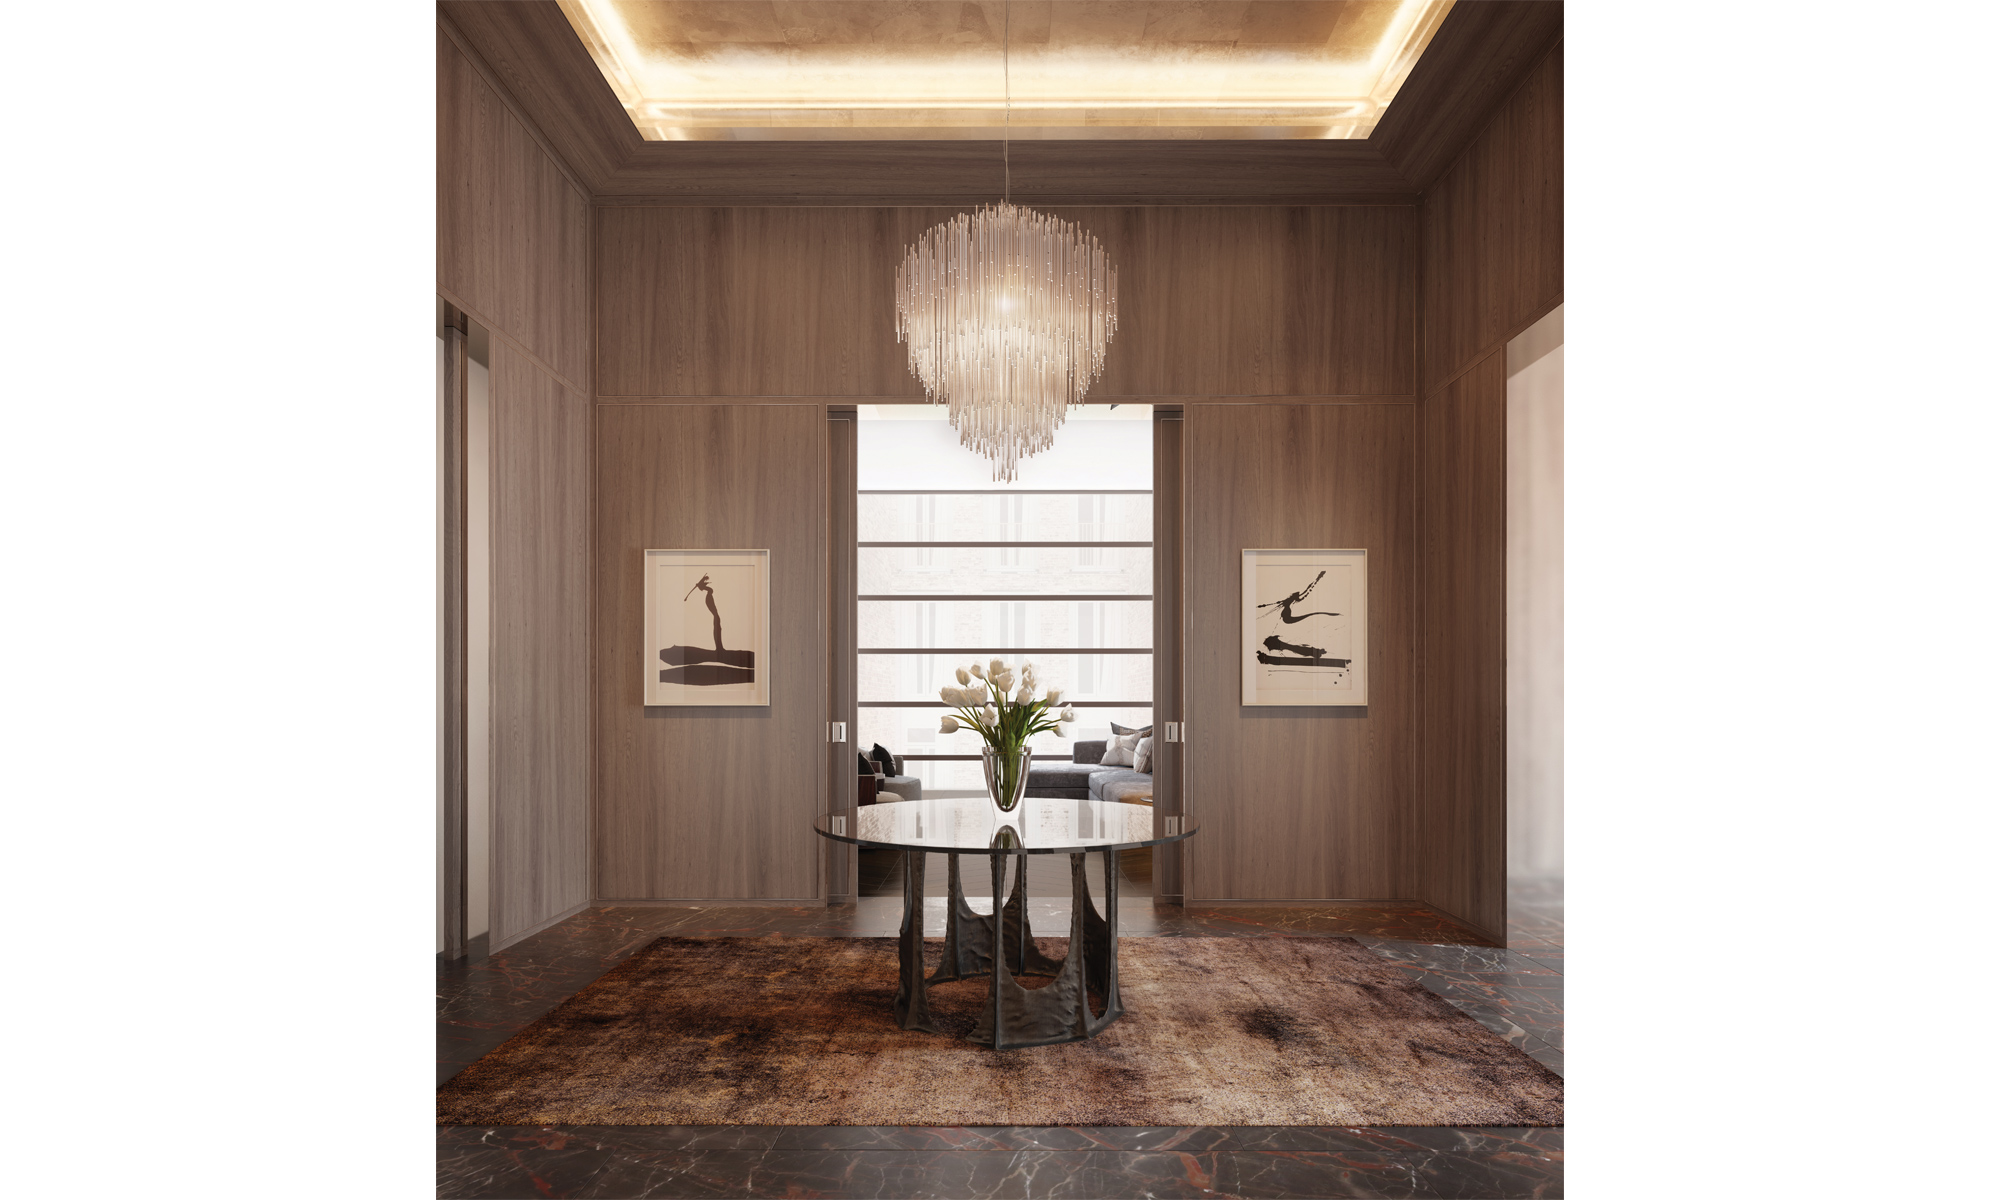 Artist's impression of an apartment entrance lift lobby.